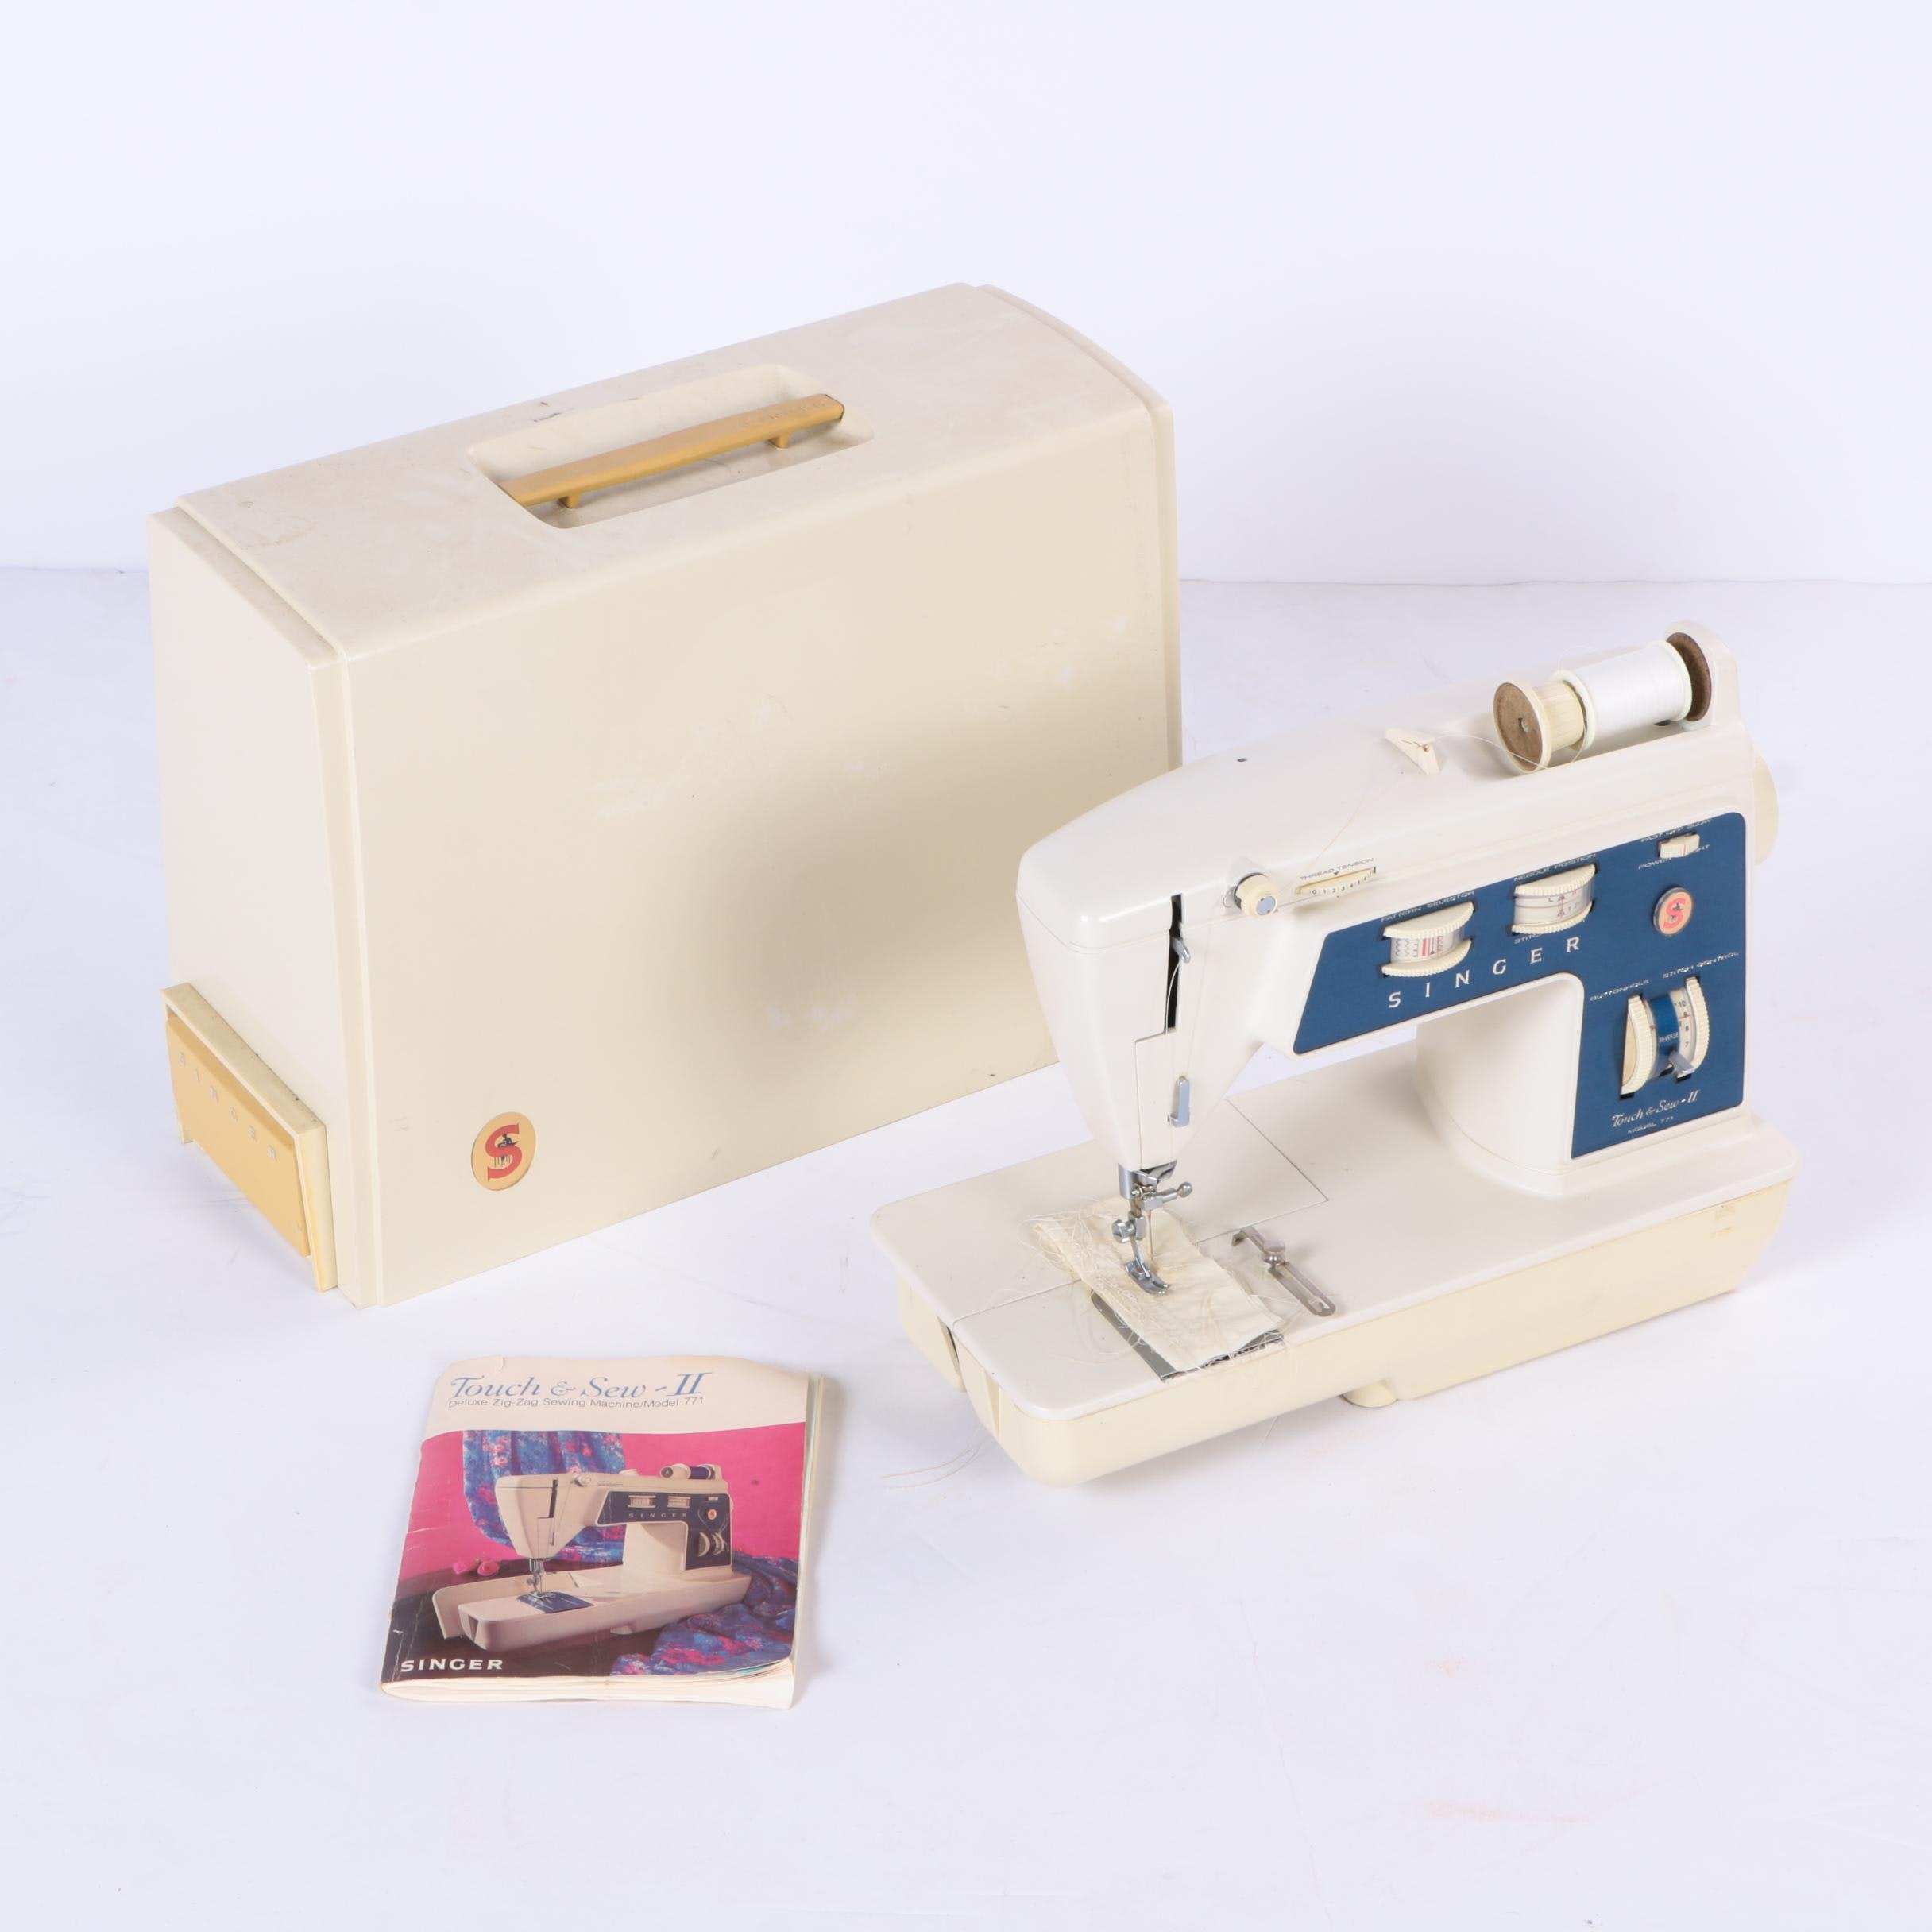 Singer Touch & Sew II Sewing Machine